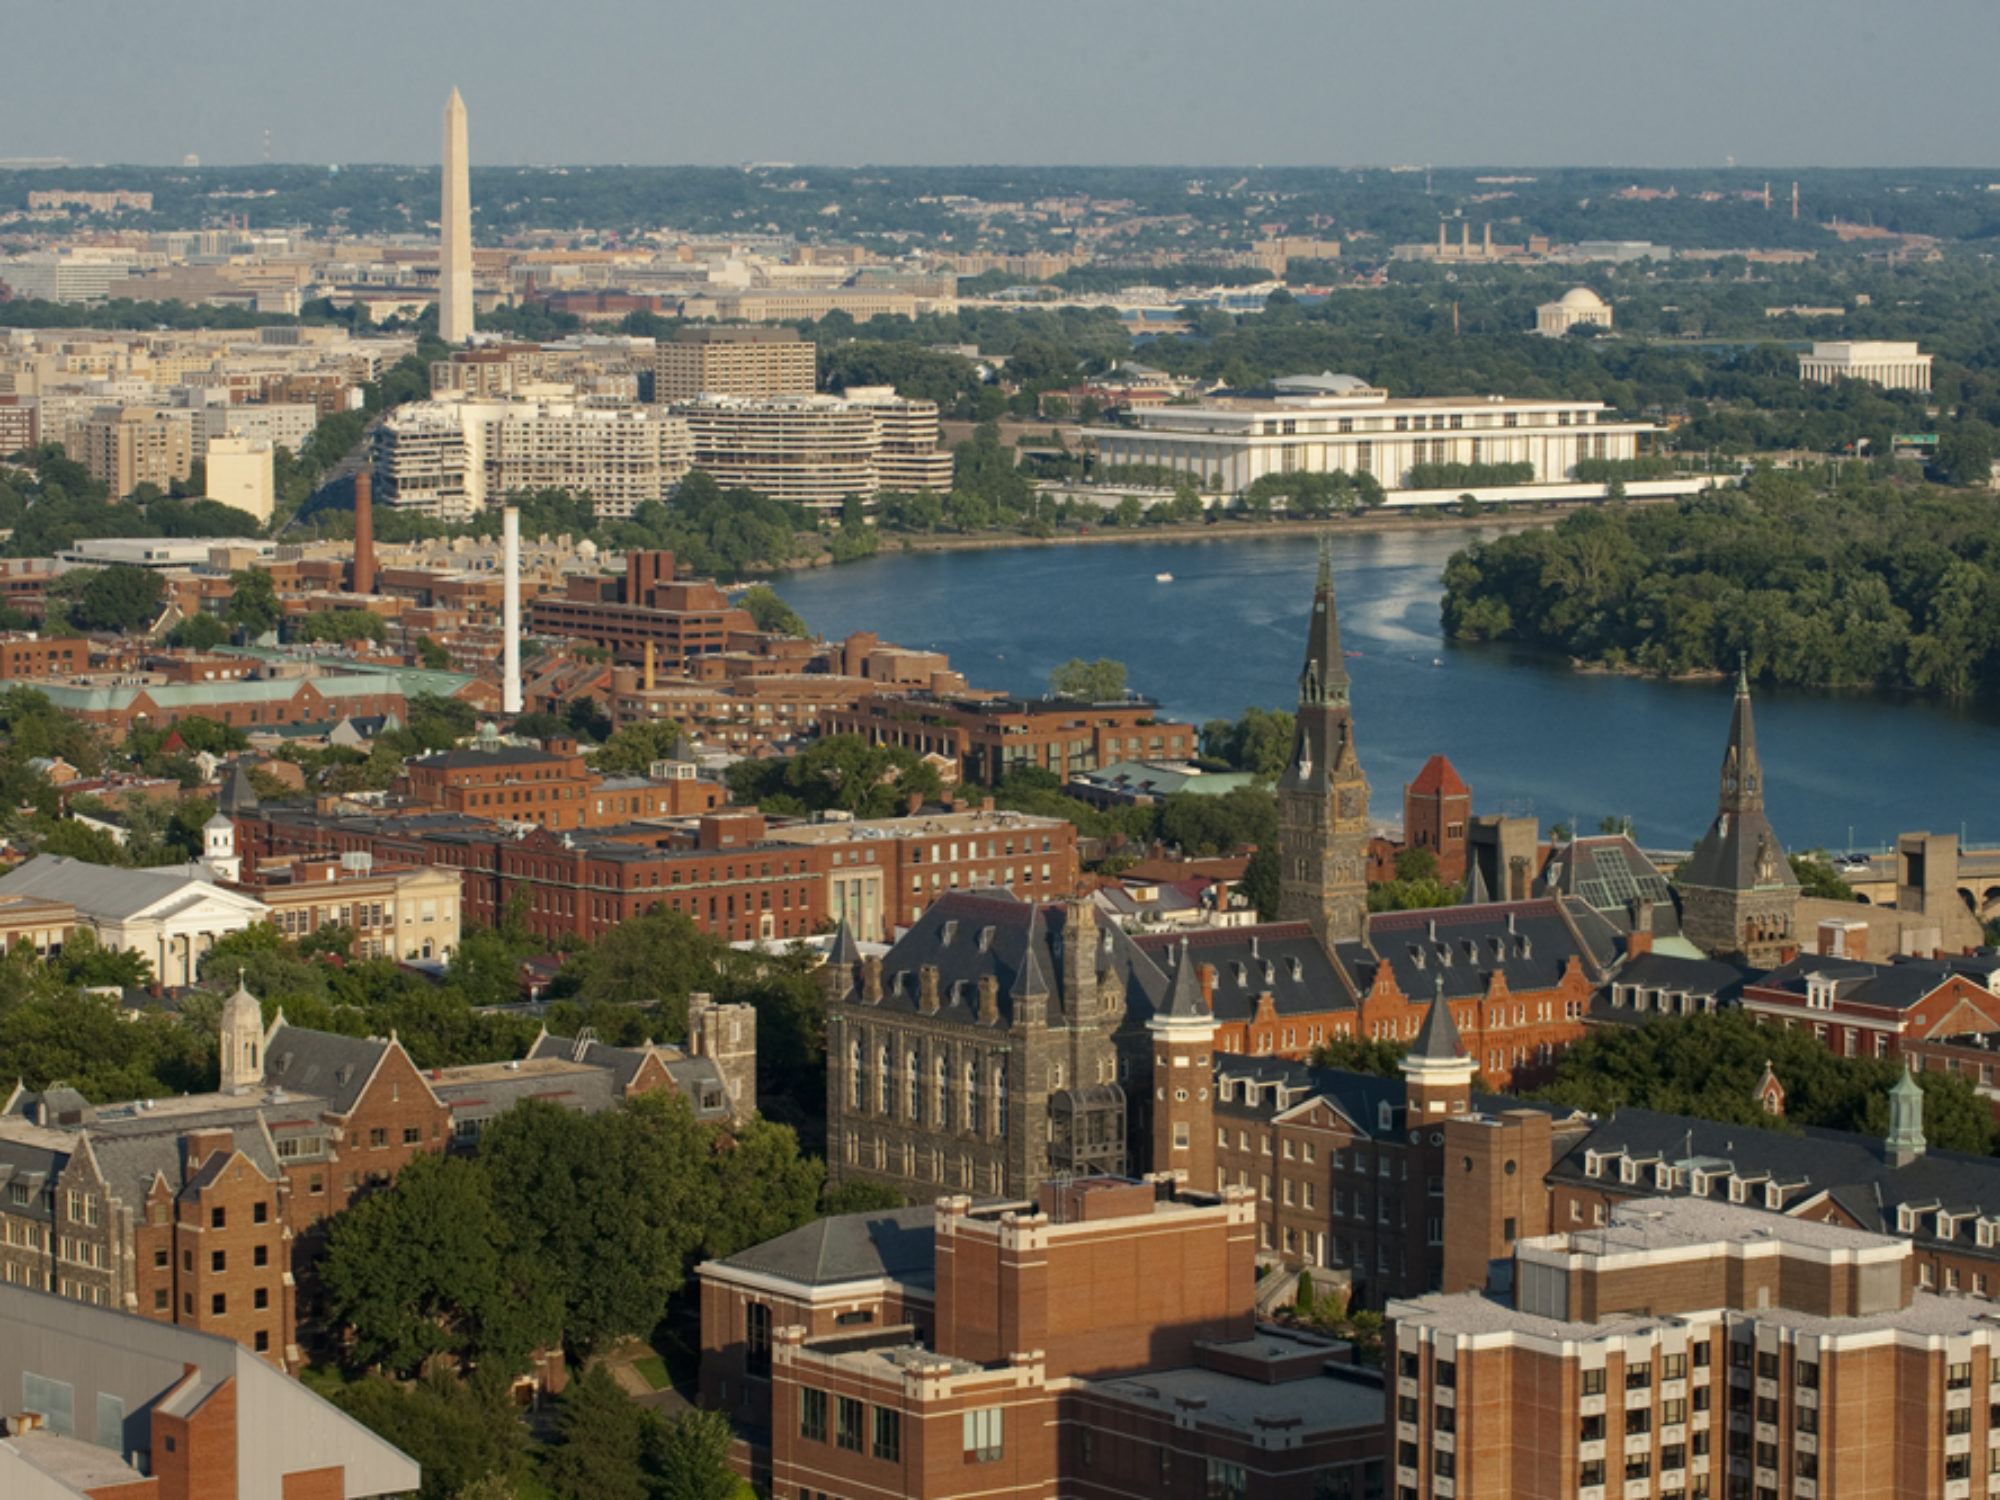 Georgetown University Ariel Shot with DC in Background